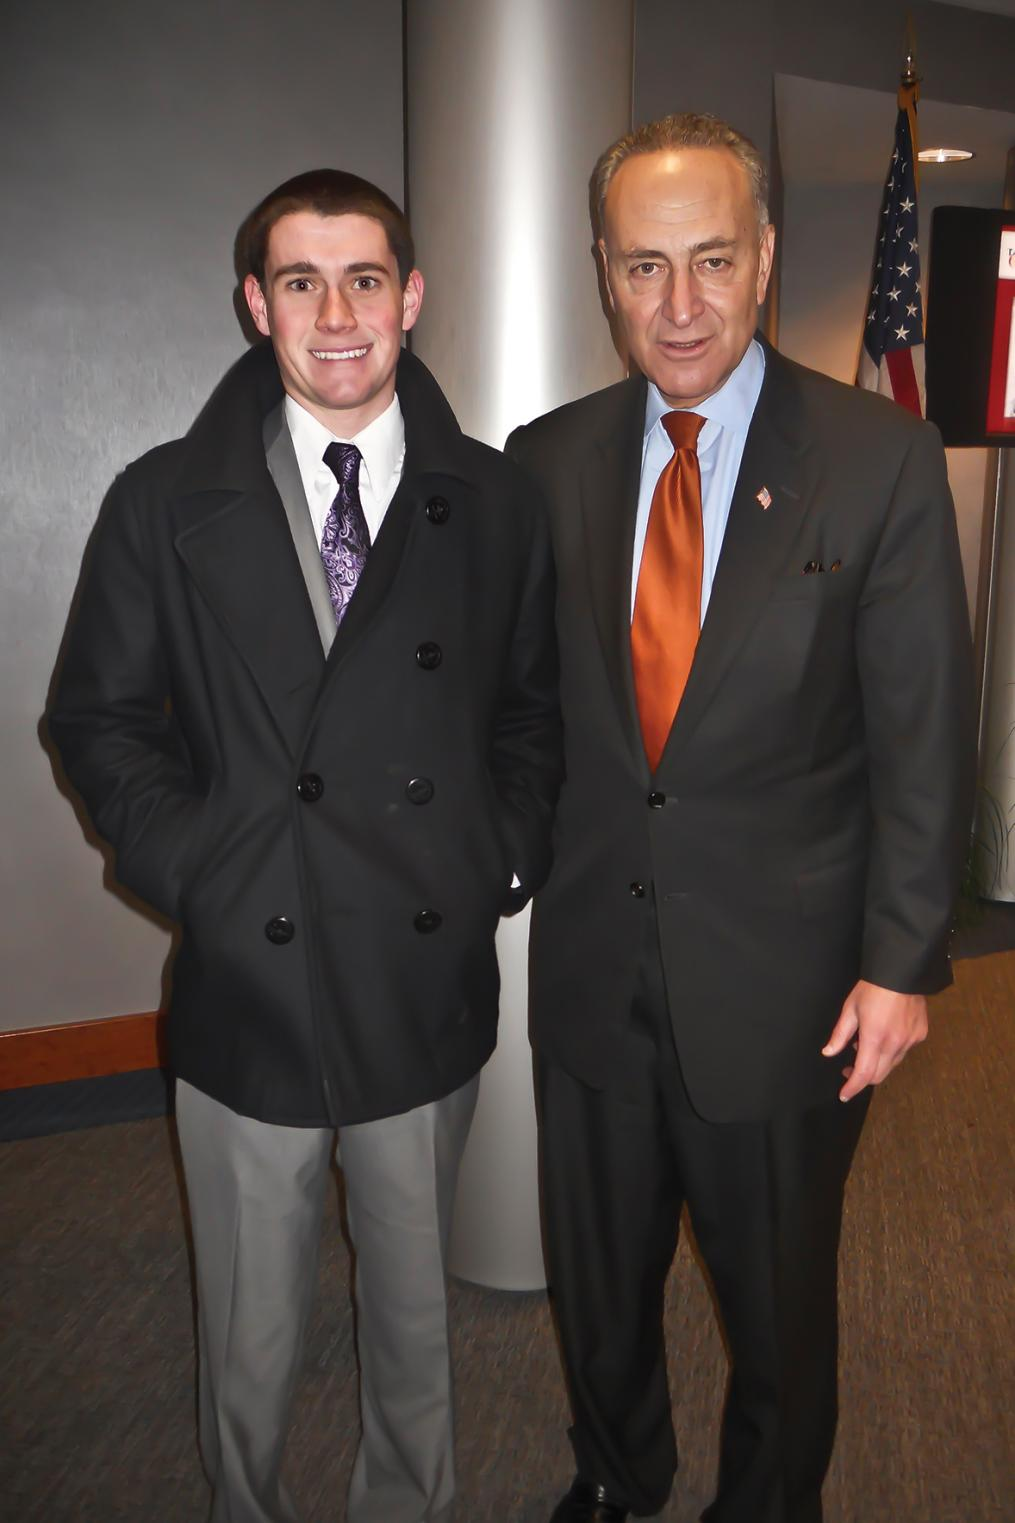 Tom Drumm stands with U.S. Sen. Charles E. Schumer